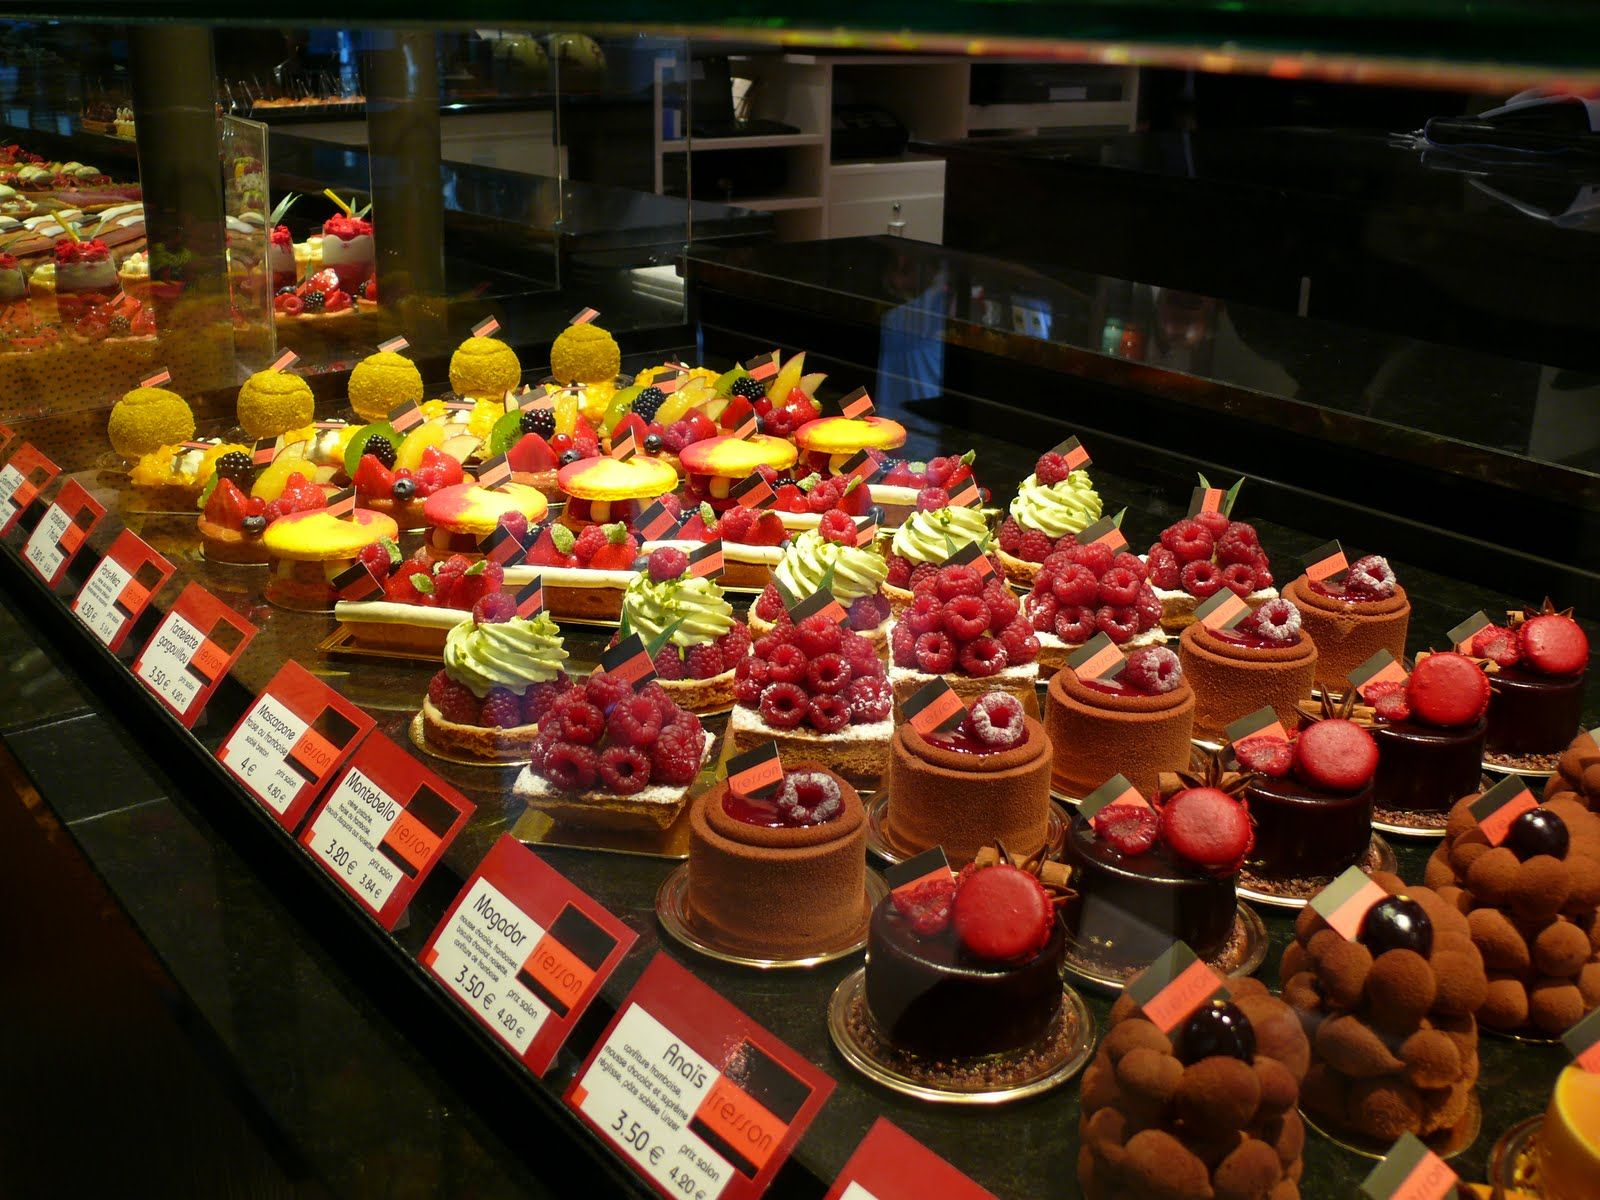 Very beautiful patisserie display